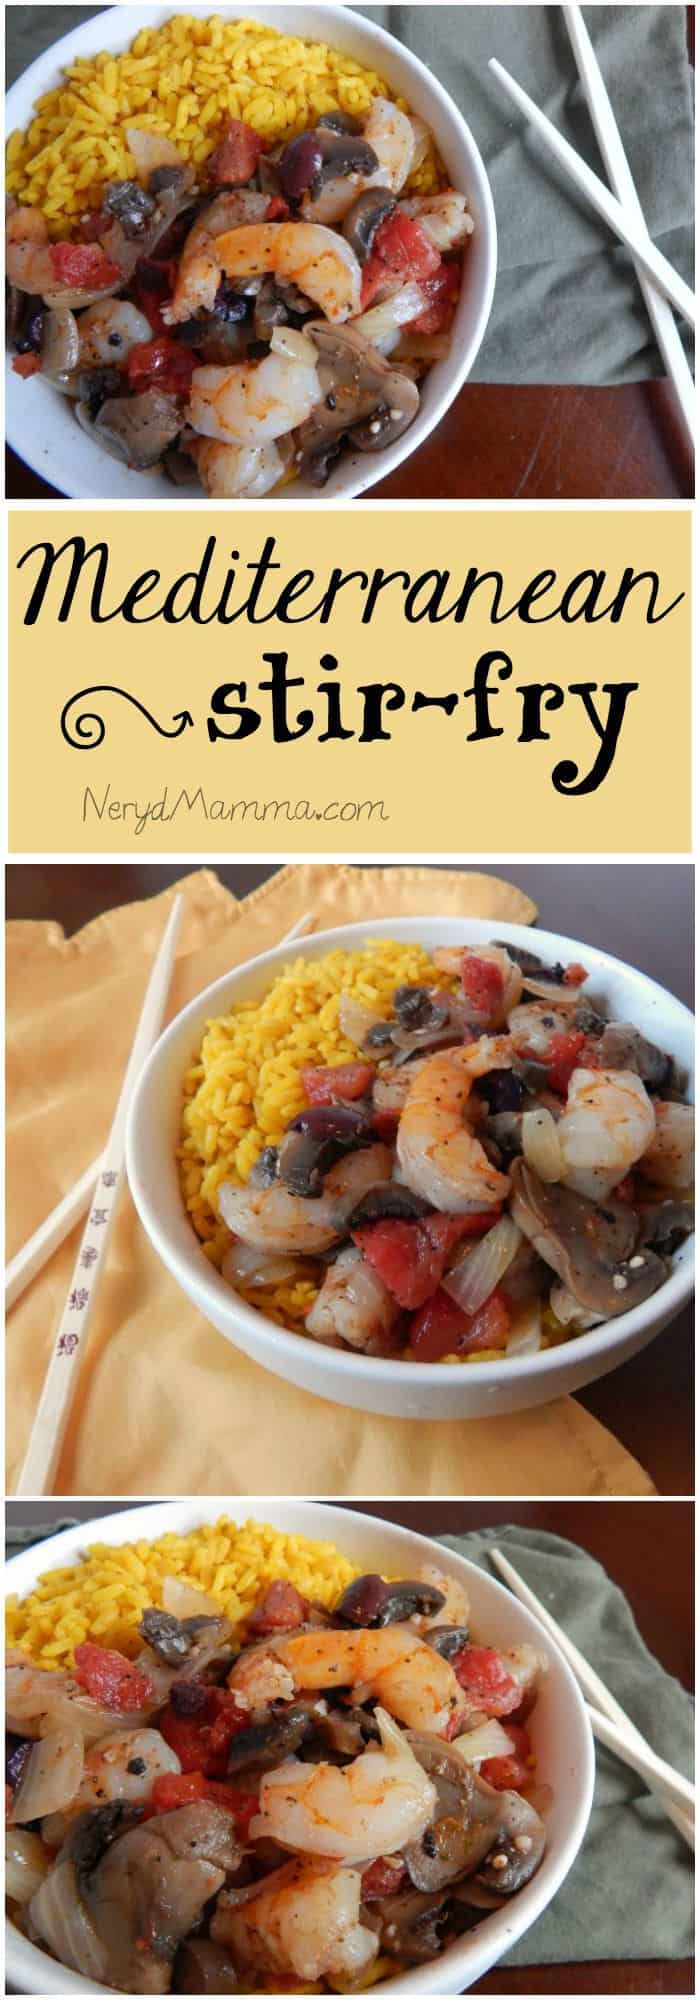 This is such a fast and easy dinner. I love this Mediterranean Stir-Fry.